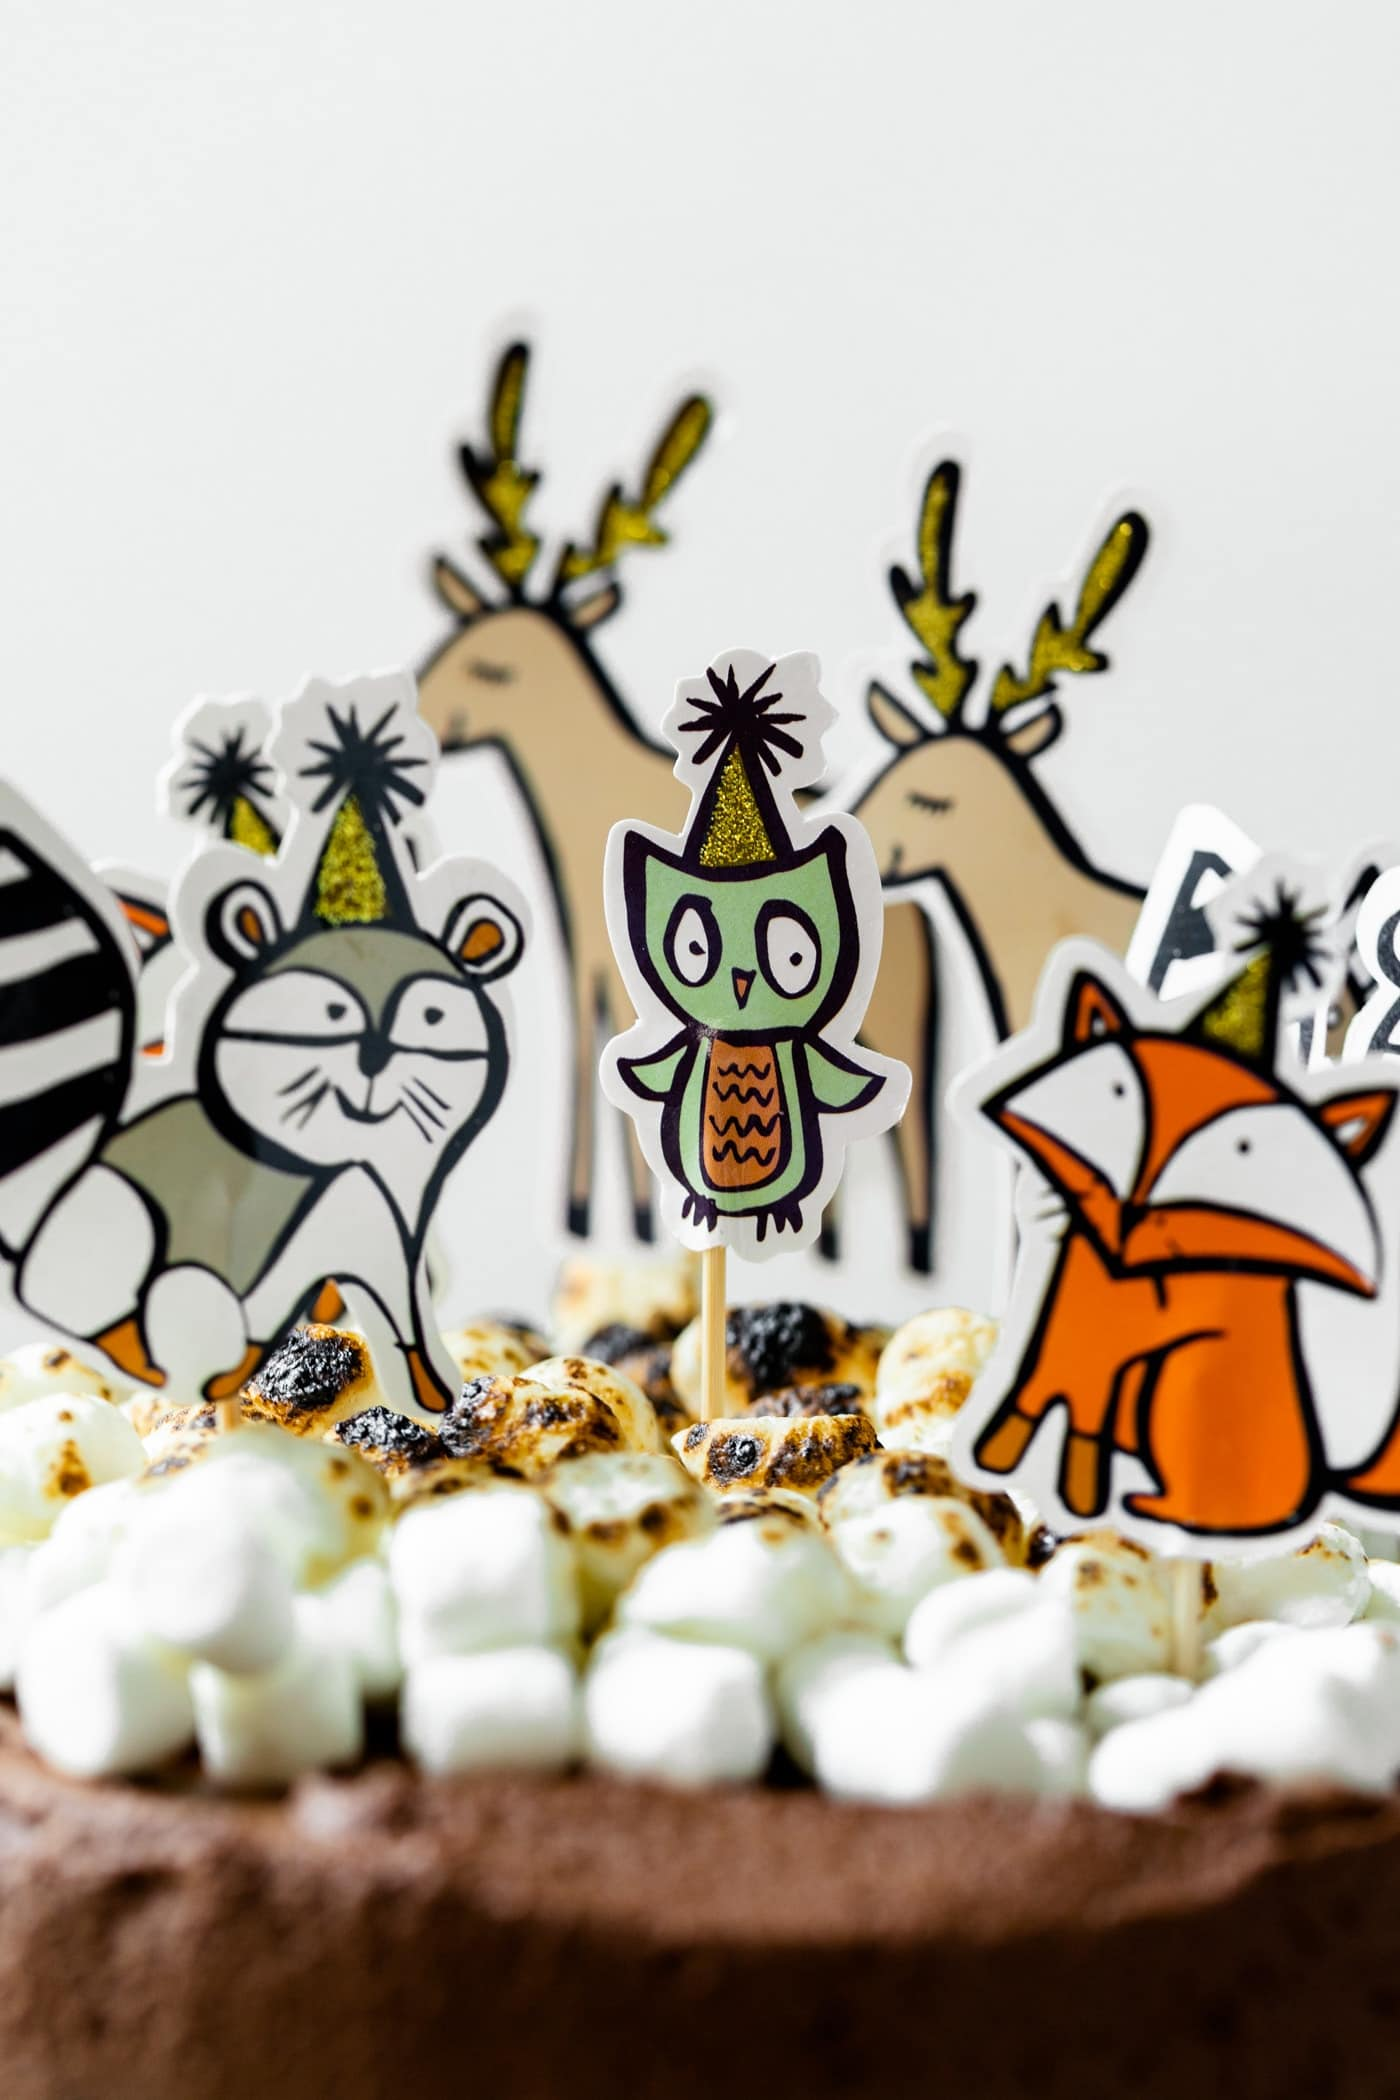 Birthday animal figurines on top of s'mores ice cream cake topped with chocolate frosting and torched marshmallows in front of white background